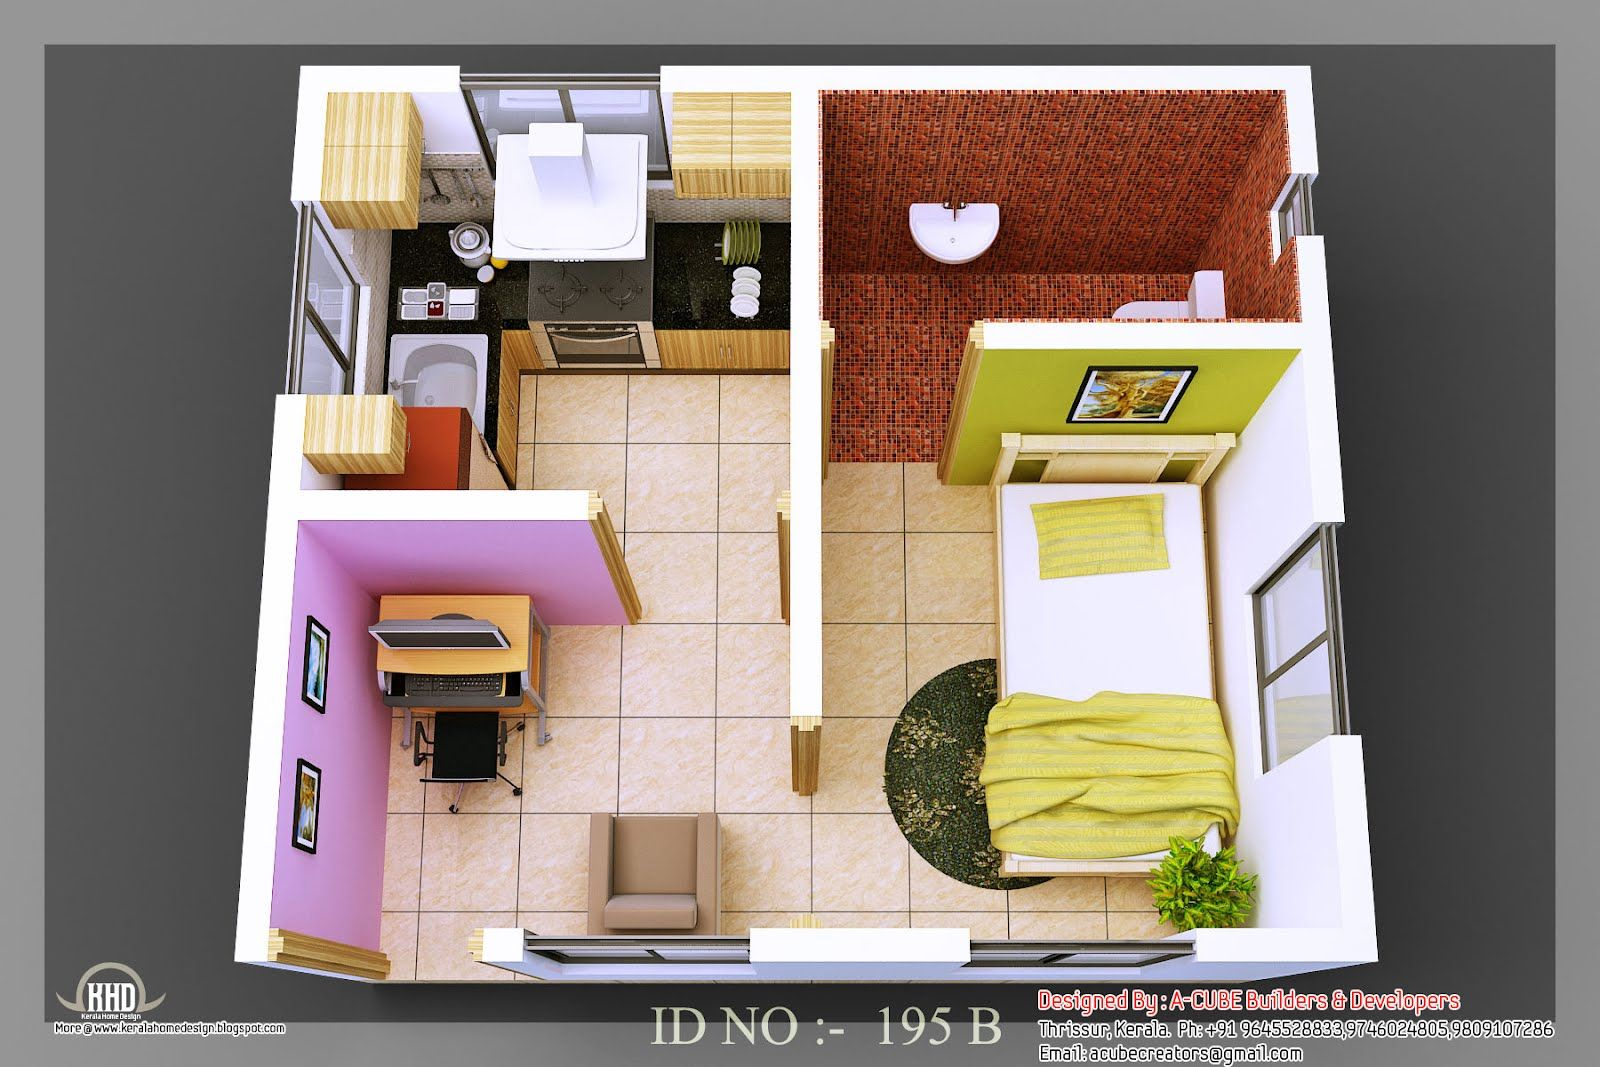 Affordable Simple Beautiful Filipino Home L Regular House Designs Tiny House Interior Design Small House Interior Design Tiny House Interior